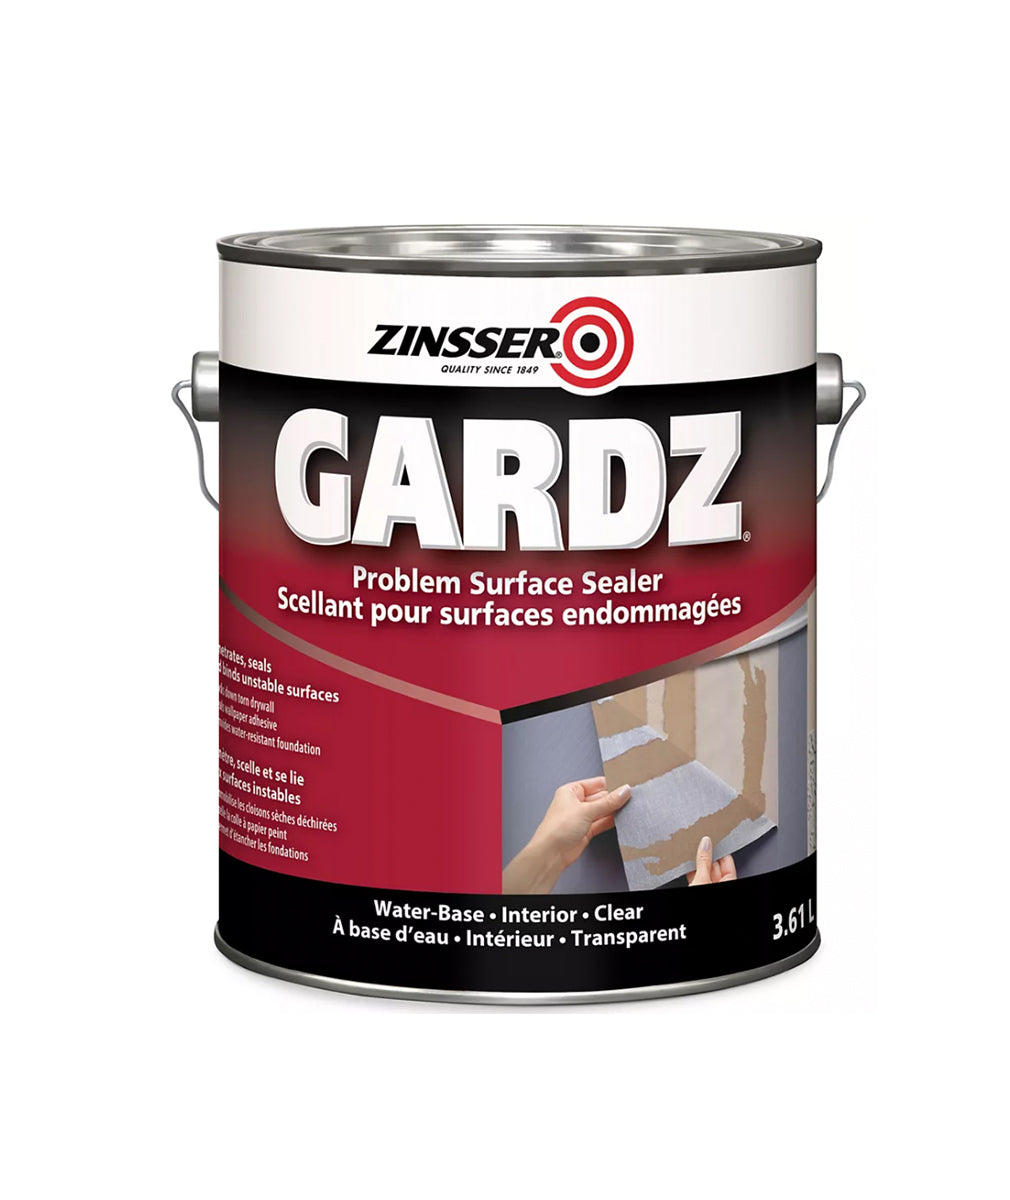 Zinsser Gardz Drywall Sealer, available at Kelly-Moore Paints for Contractors.